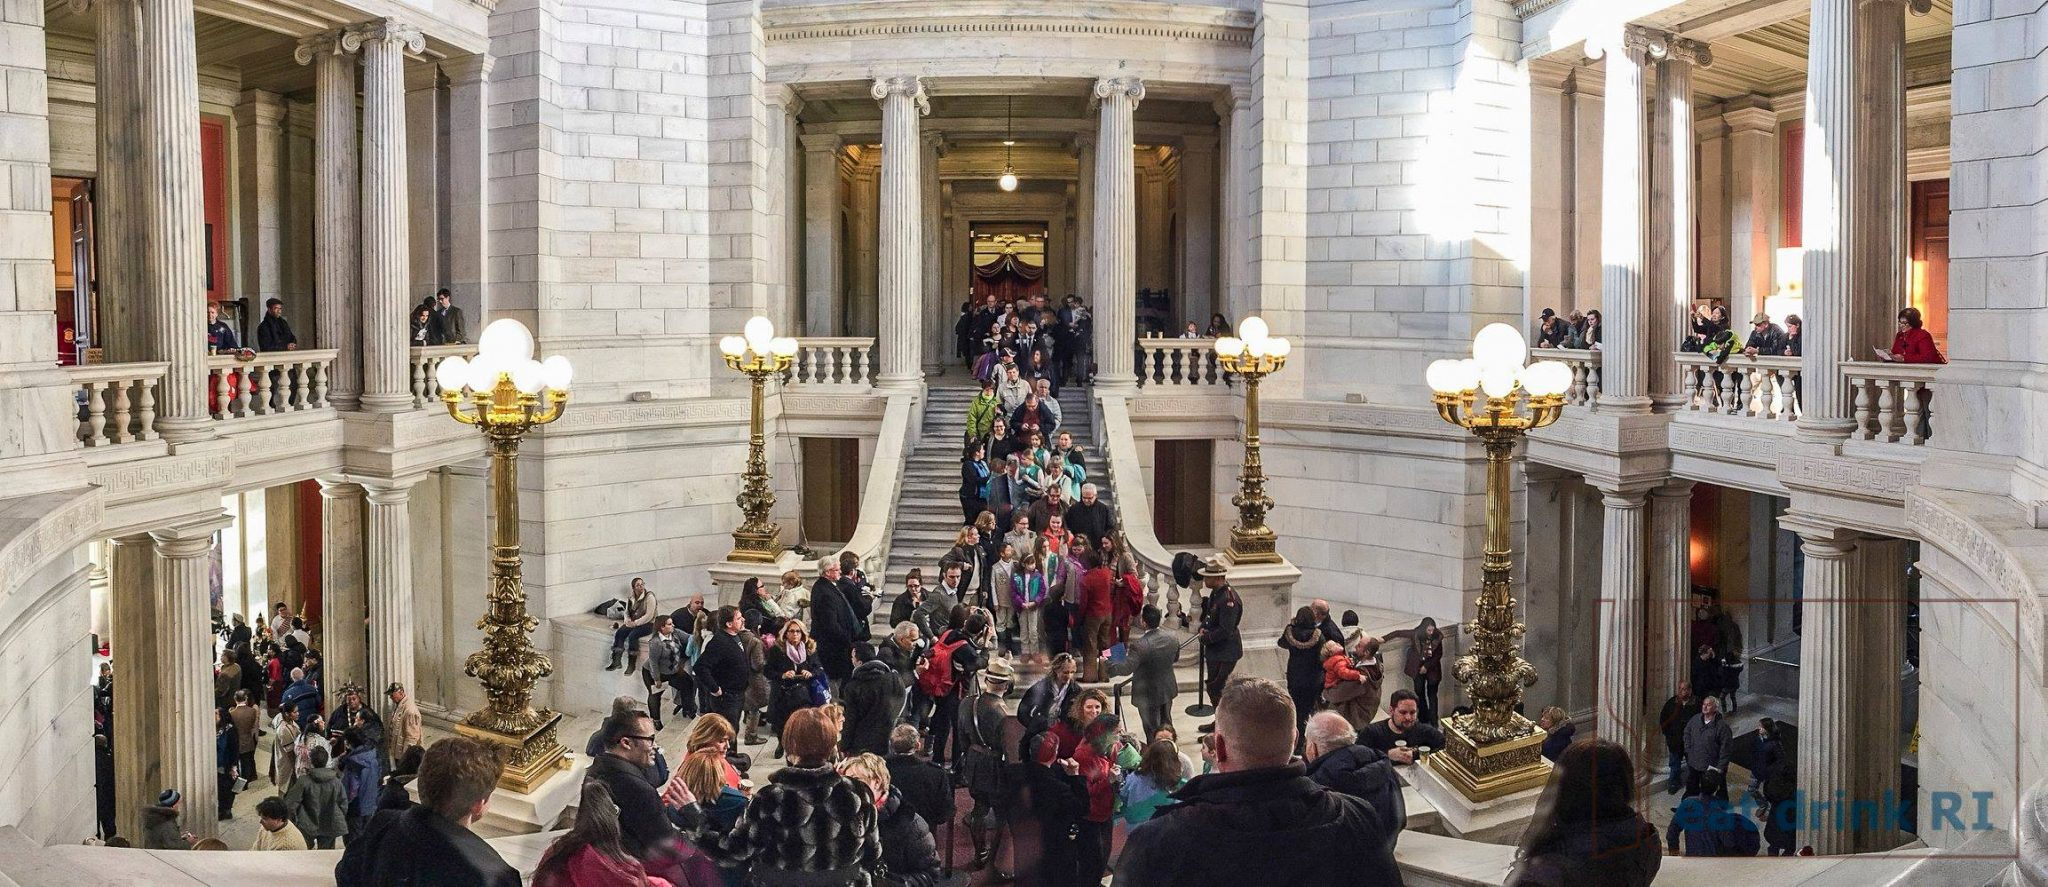 2015 Open House at the State House